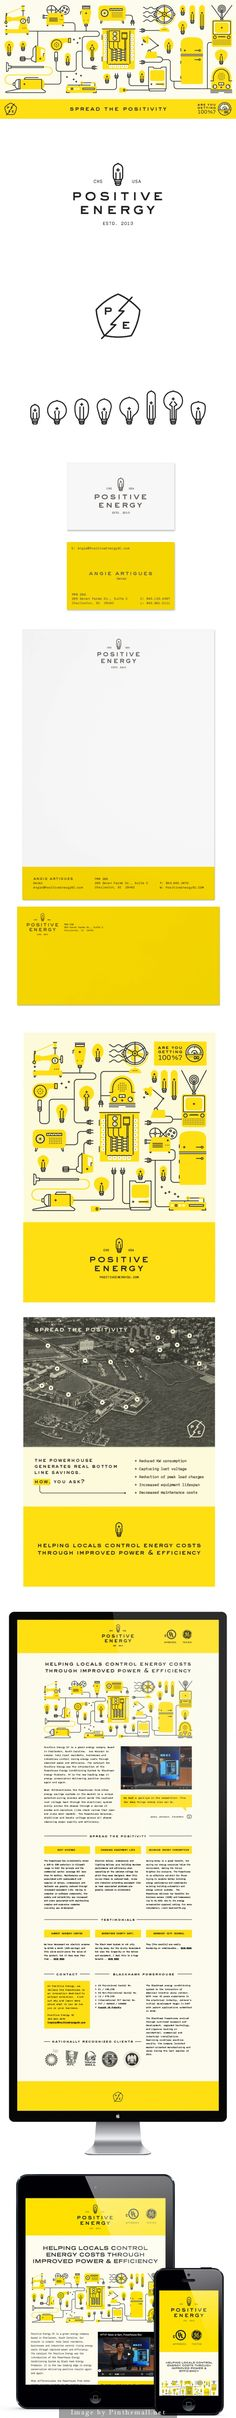 Positive Energy Branding by Fuzzco http://fuzzco.com/work/positive-energy/